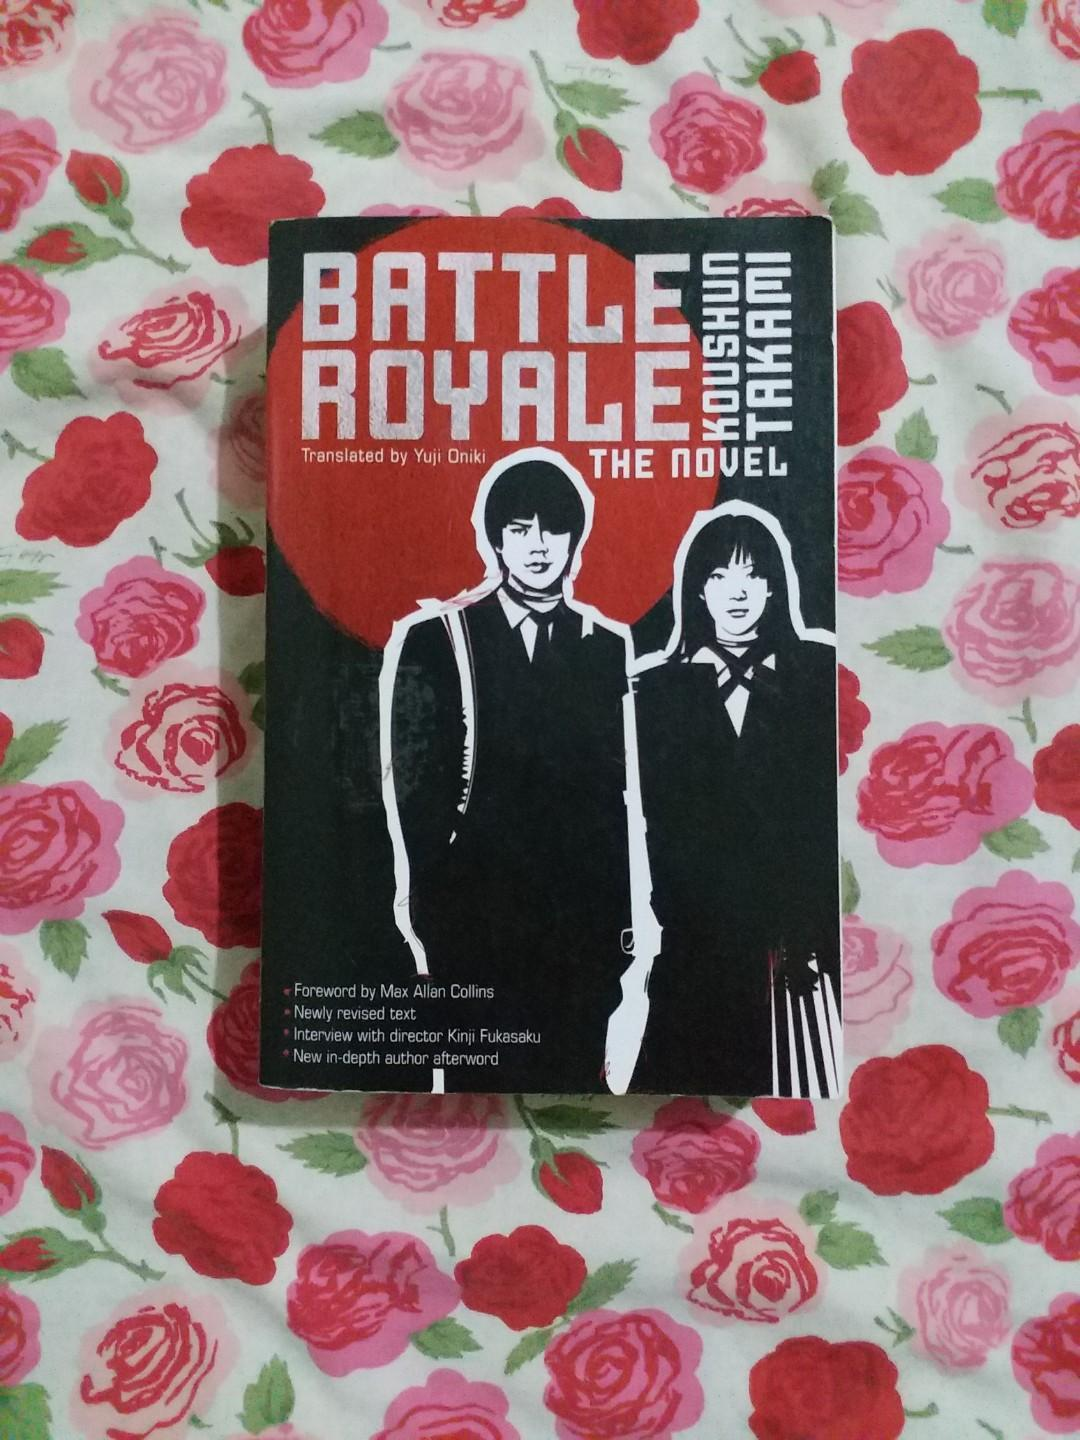 Battle Royale: The Novel by Koushun Takami on Carousell